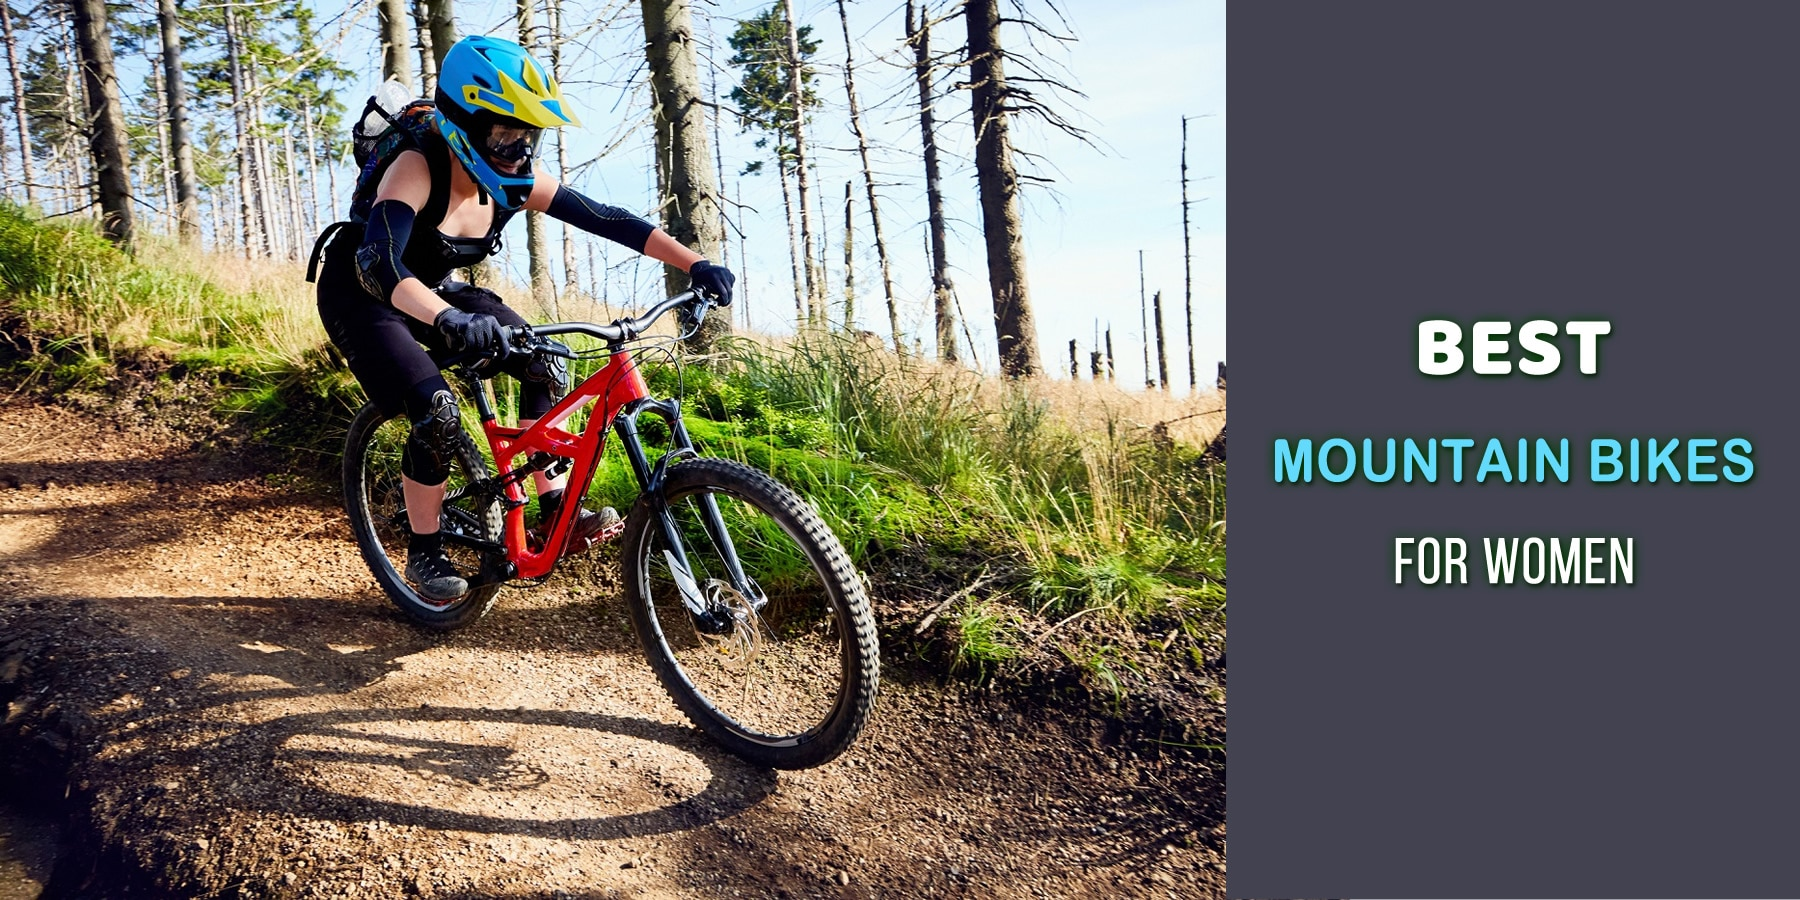 Best Mountain Bikes For Women In 2019 Recommended By Experts